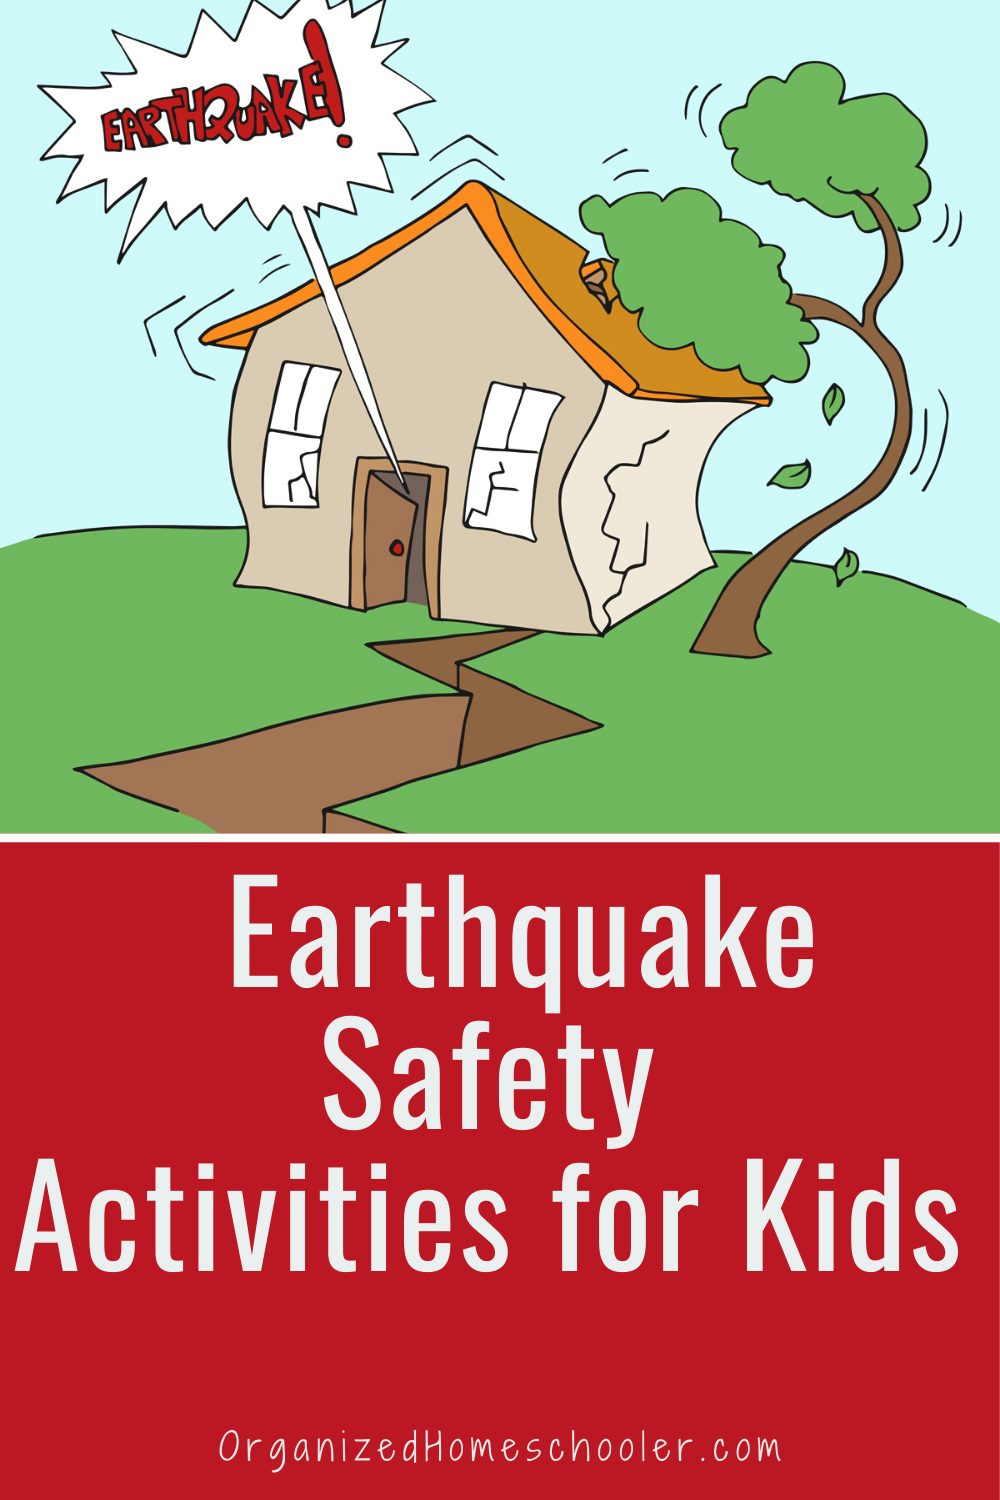 after earthquake Health and safety poster, Earthquake